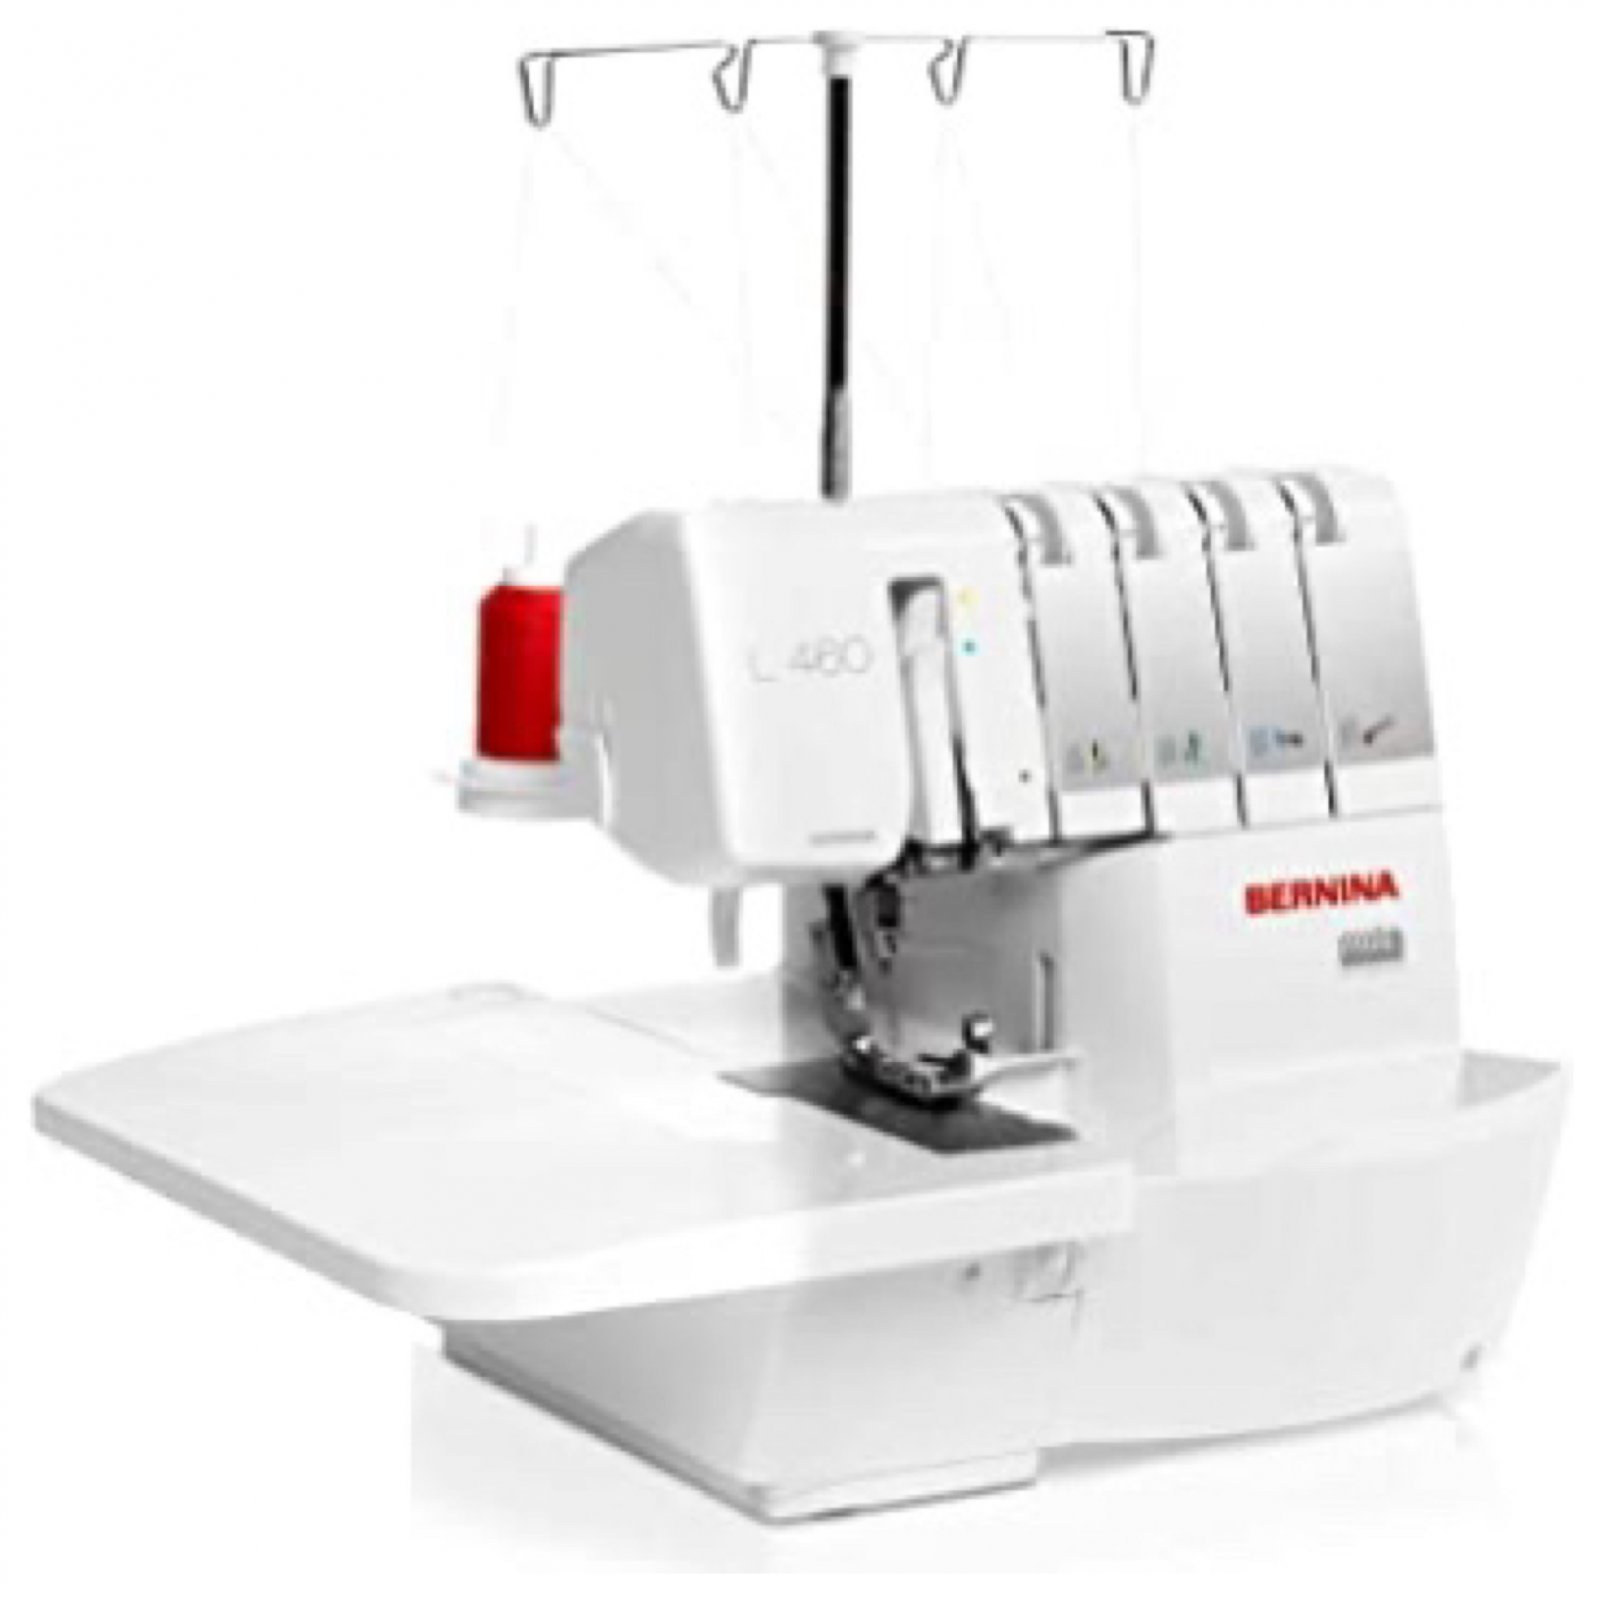 L460 Overlocker MSRP $1899.00